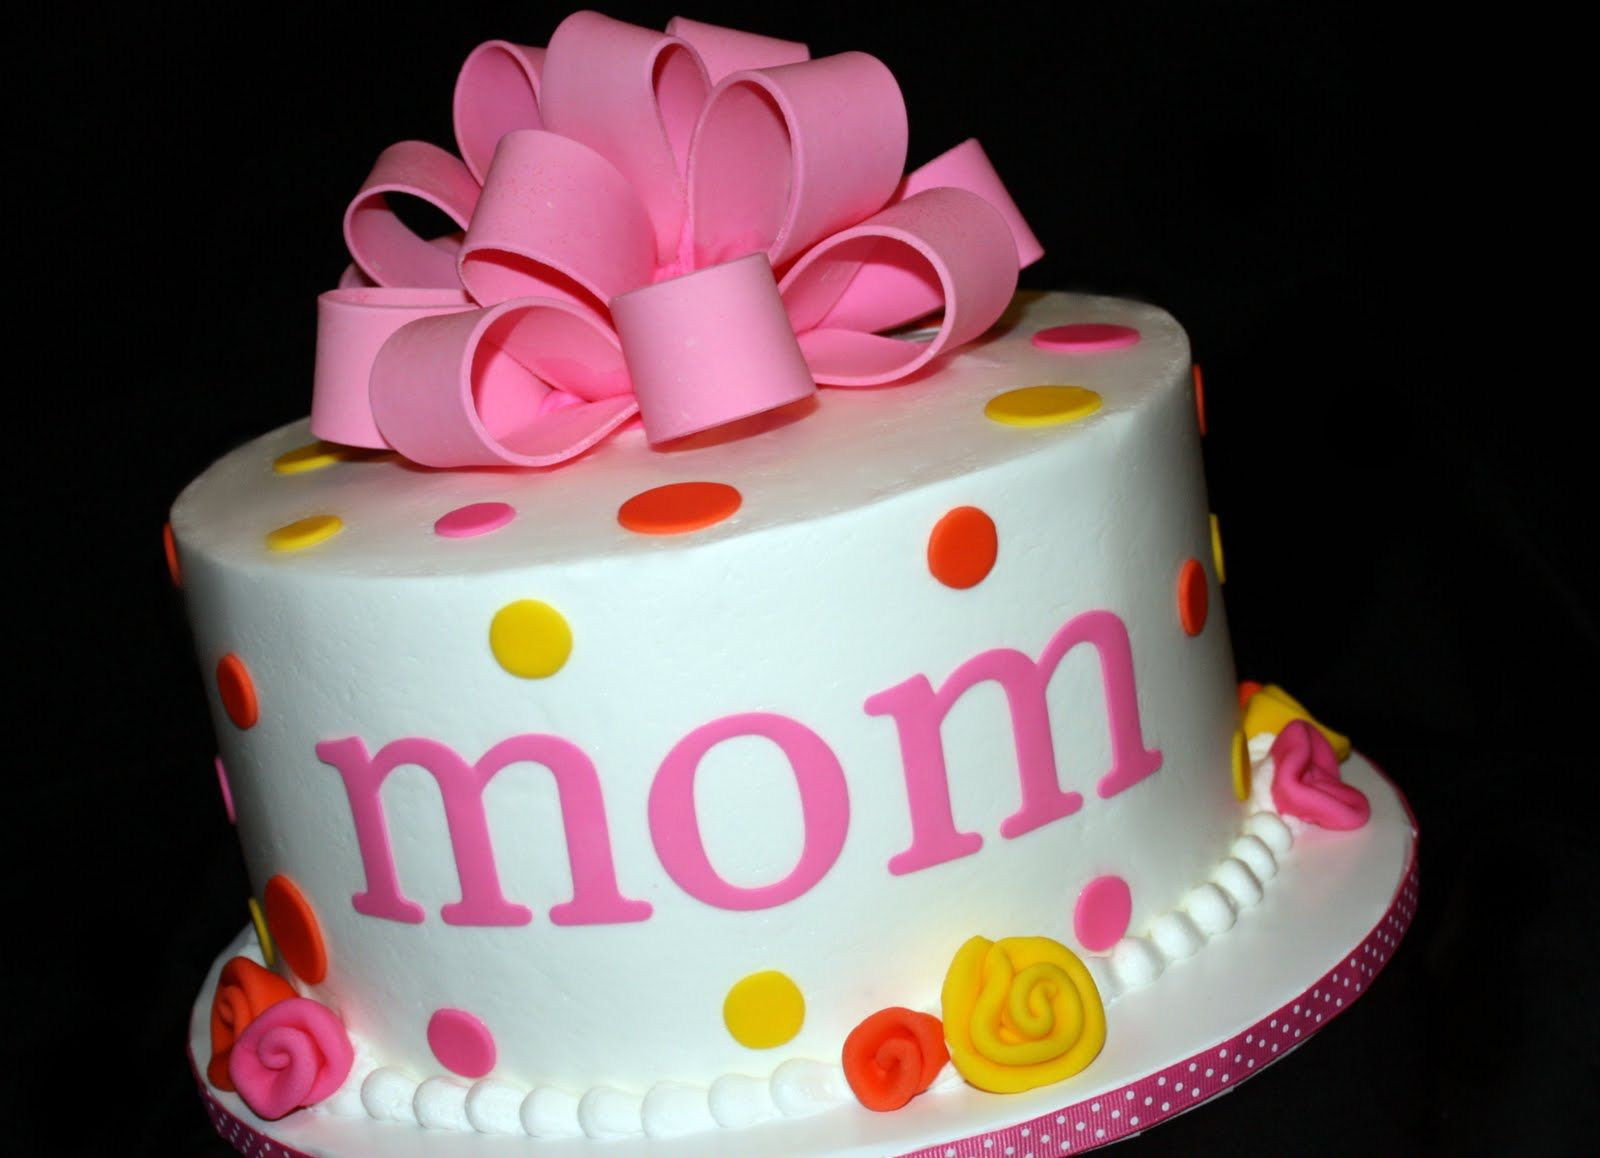 Pin cara menghias kue cake decorating cake on pinterest - Fun Cakes Mom Birthday Cake